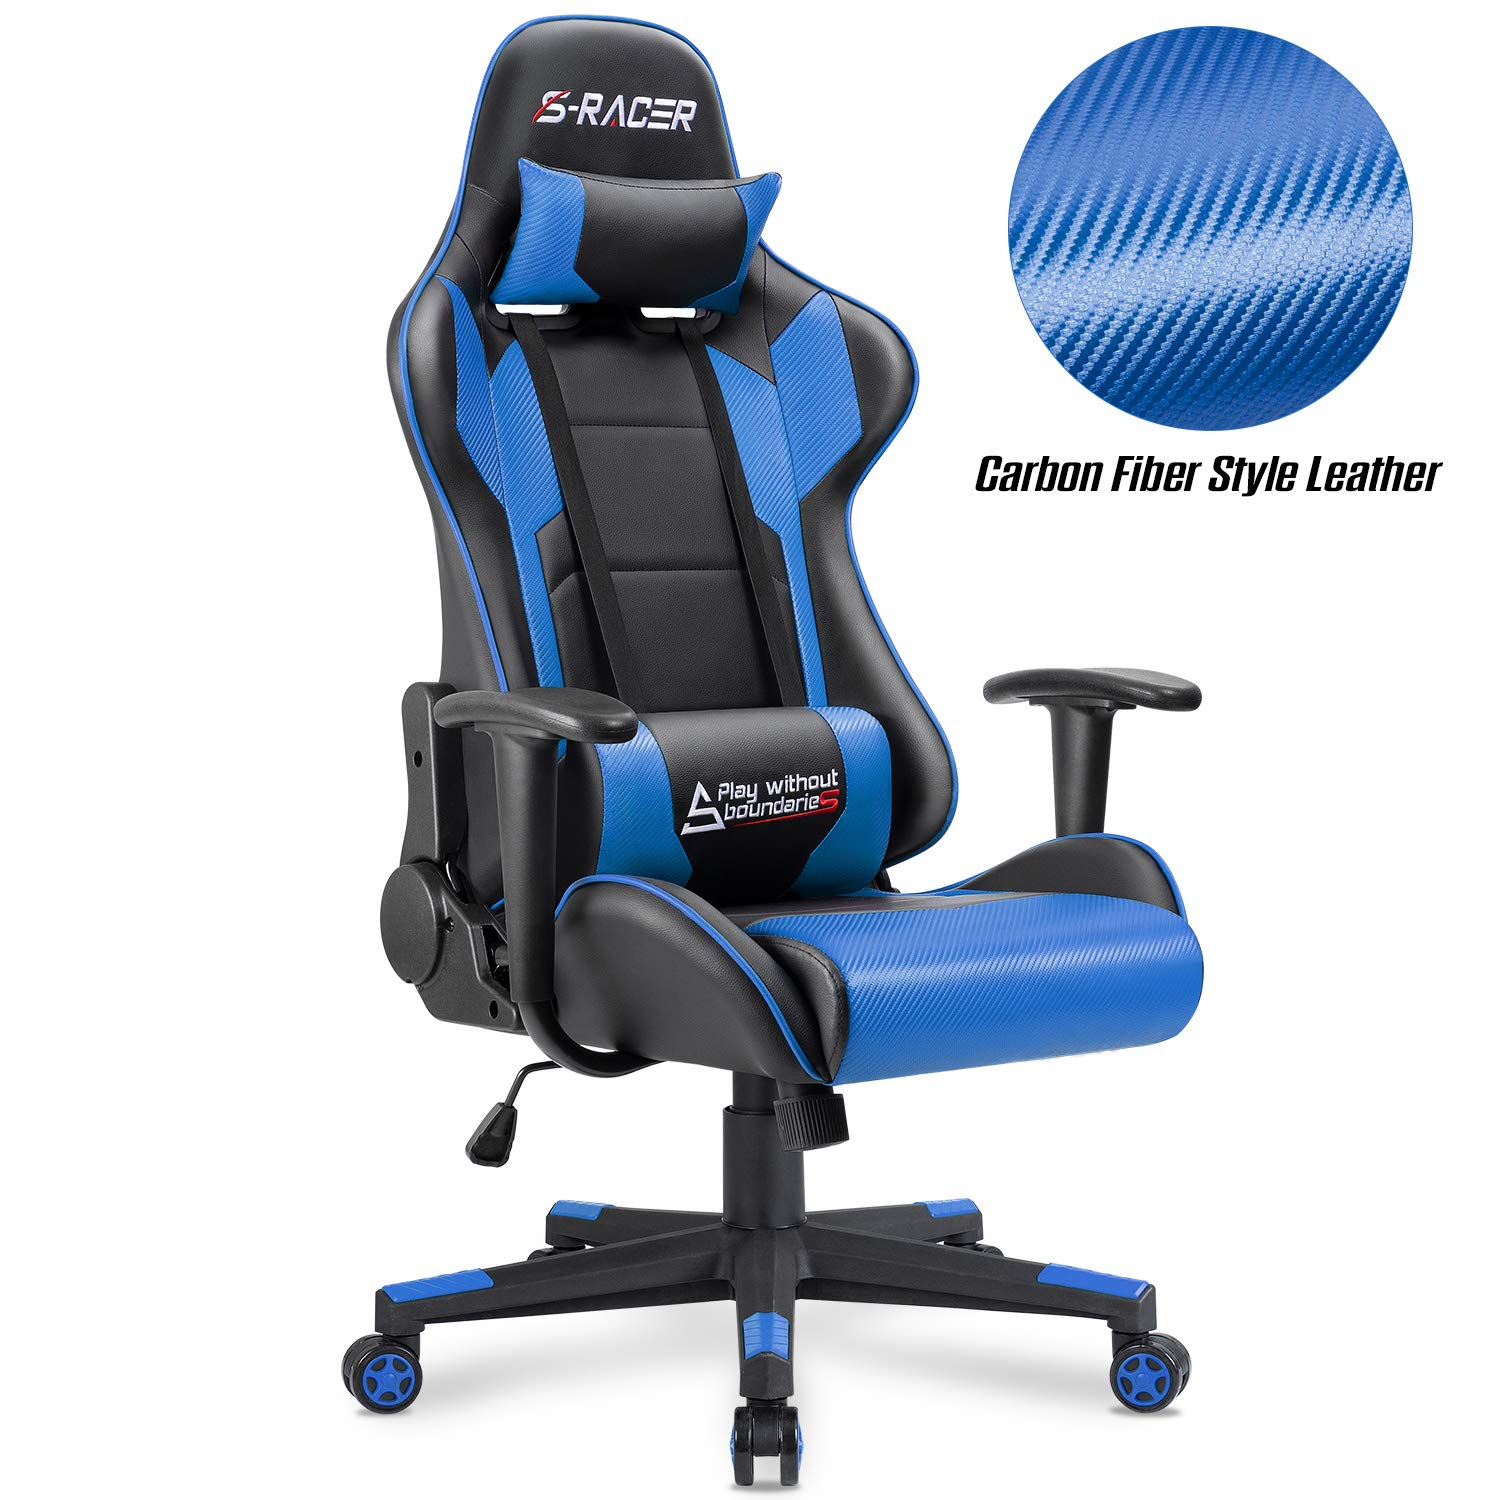 Furniwell Gaming Chair Racing Computer Chair PC Office Desk Chair Adjustable Swivel High Back Carbon Fiber Style PU Leather Executive Ergonomic Chair with Headrest and Lumbar Support Blue